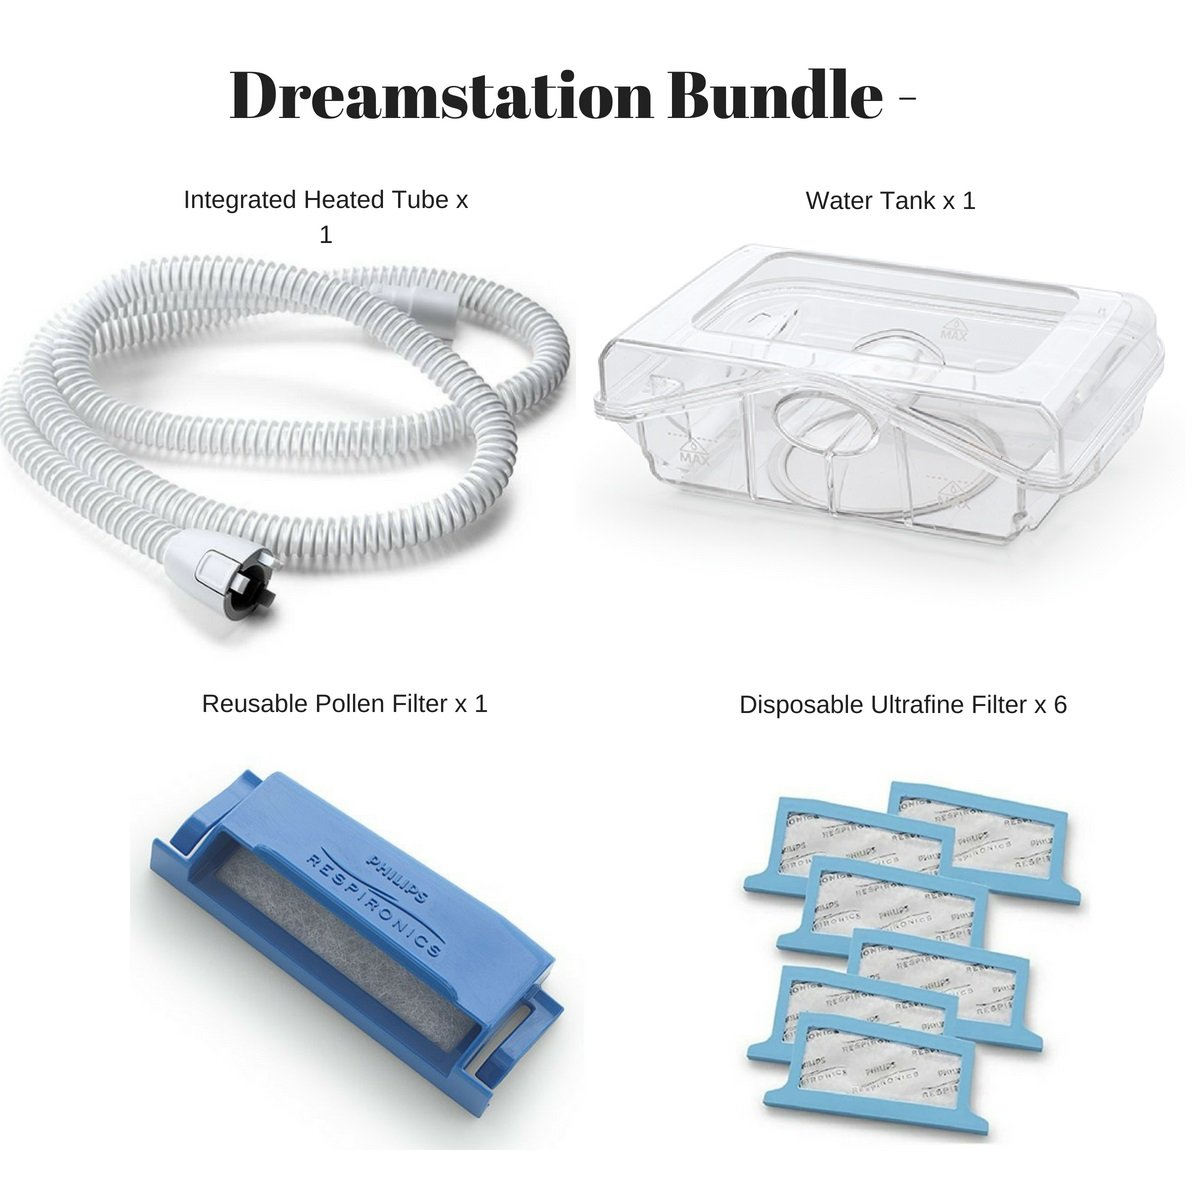 Philips Respironics Dreamstation Cpap & BIPAP Supplies Bundle - Includes Heated Tube (Qty-1)/Water Tank (Qty-1)/Reusable Pollen Filter(Qty-1)/Disposable Ultra Fine Filters(Qty-6)